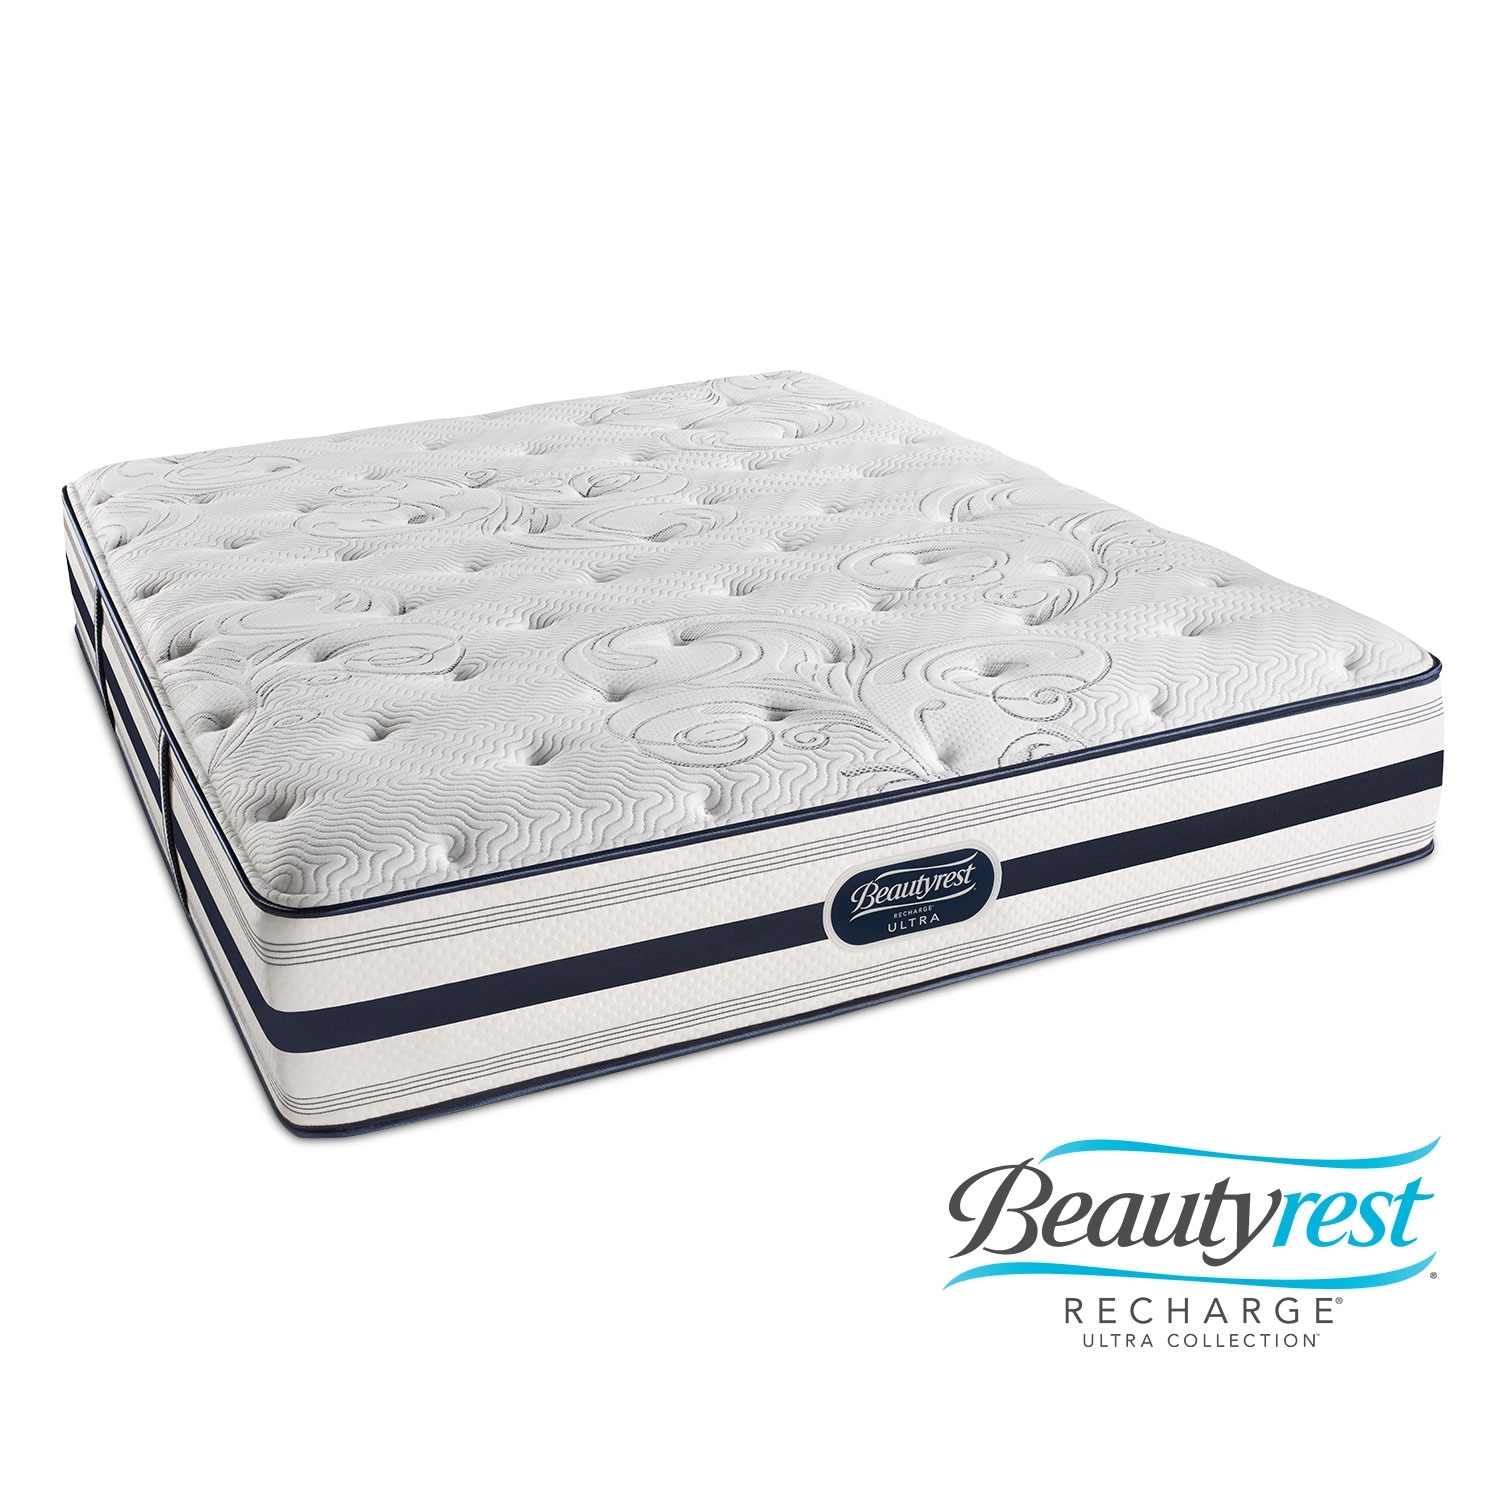 Mattresses and Bedding - Cerise Plush Twin Mattress